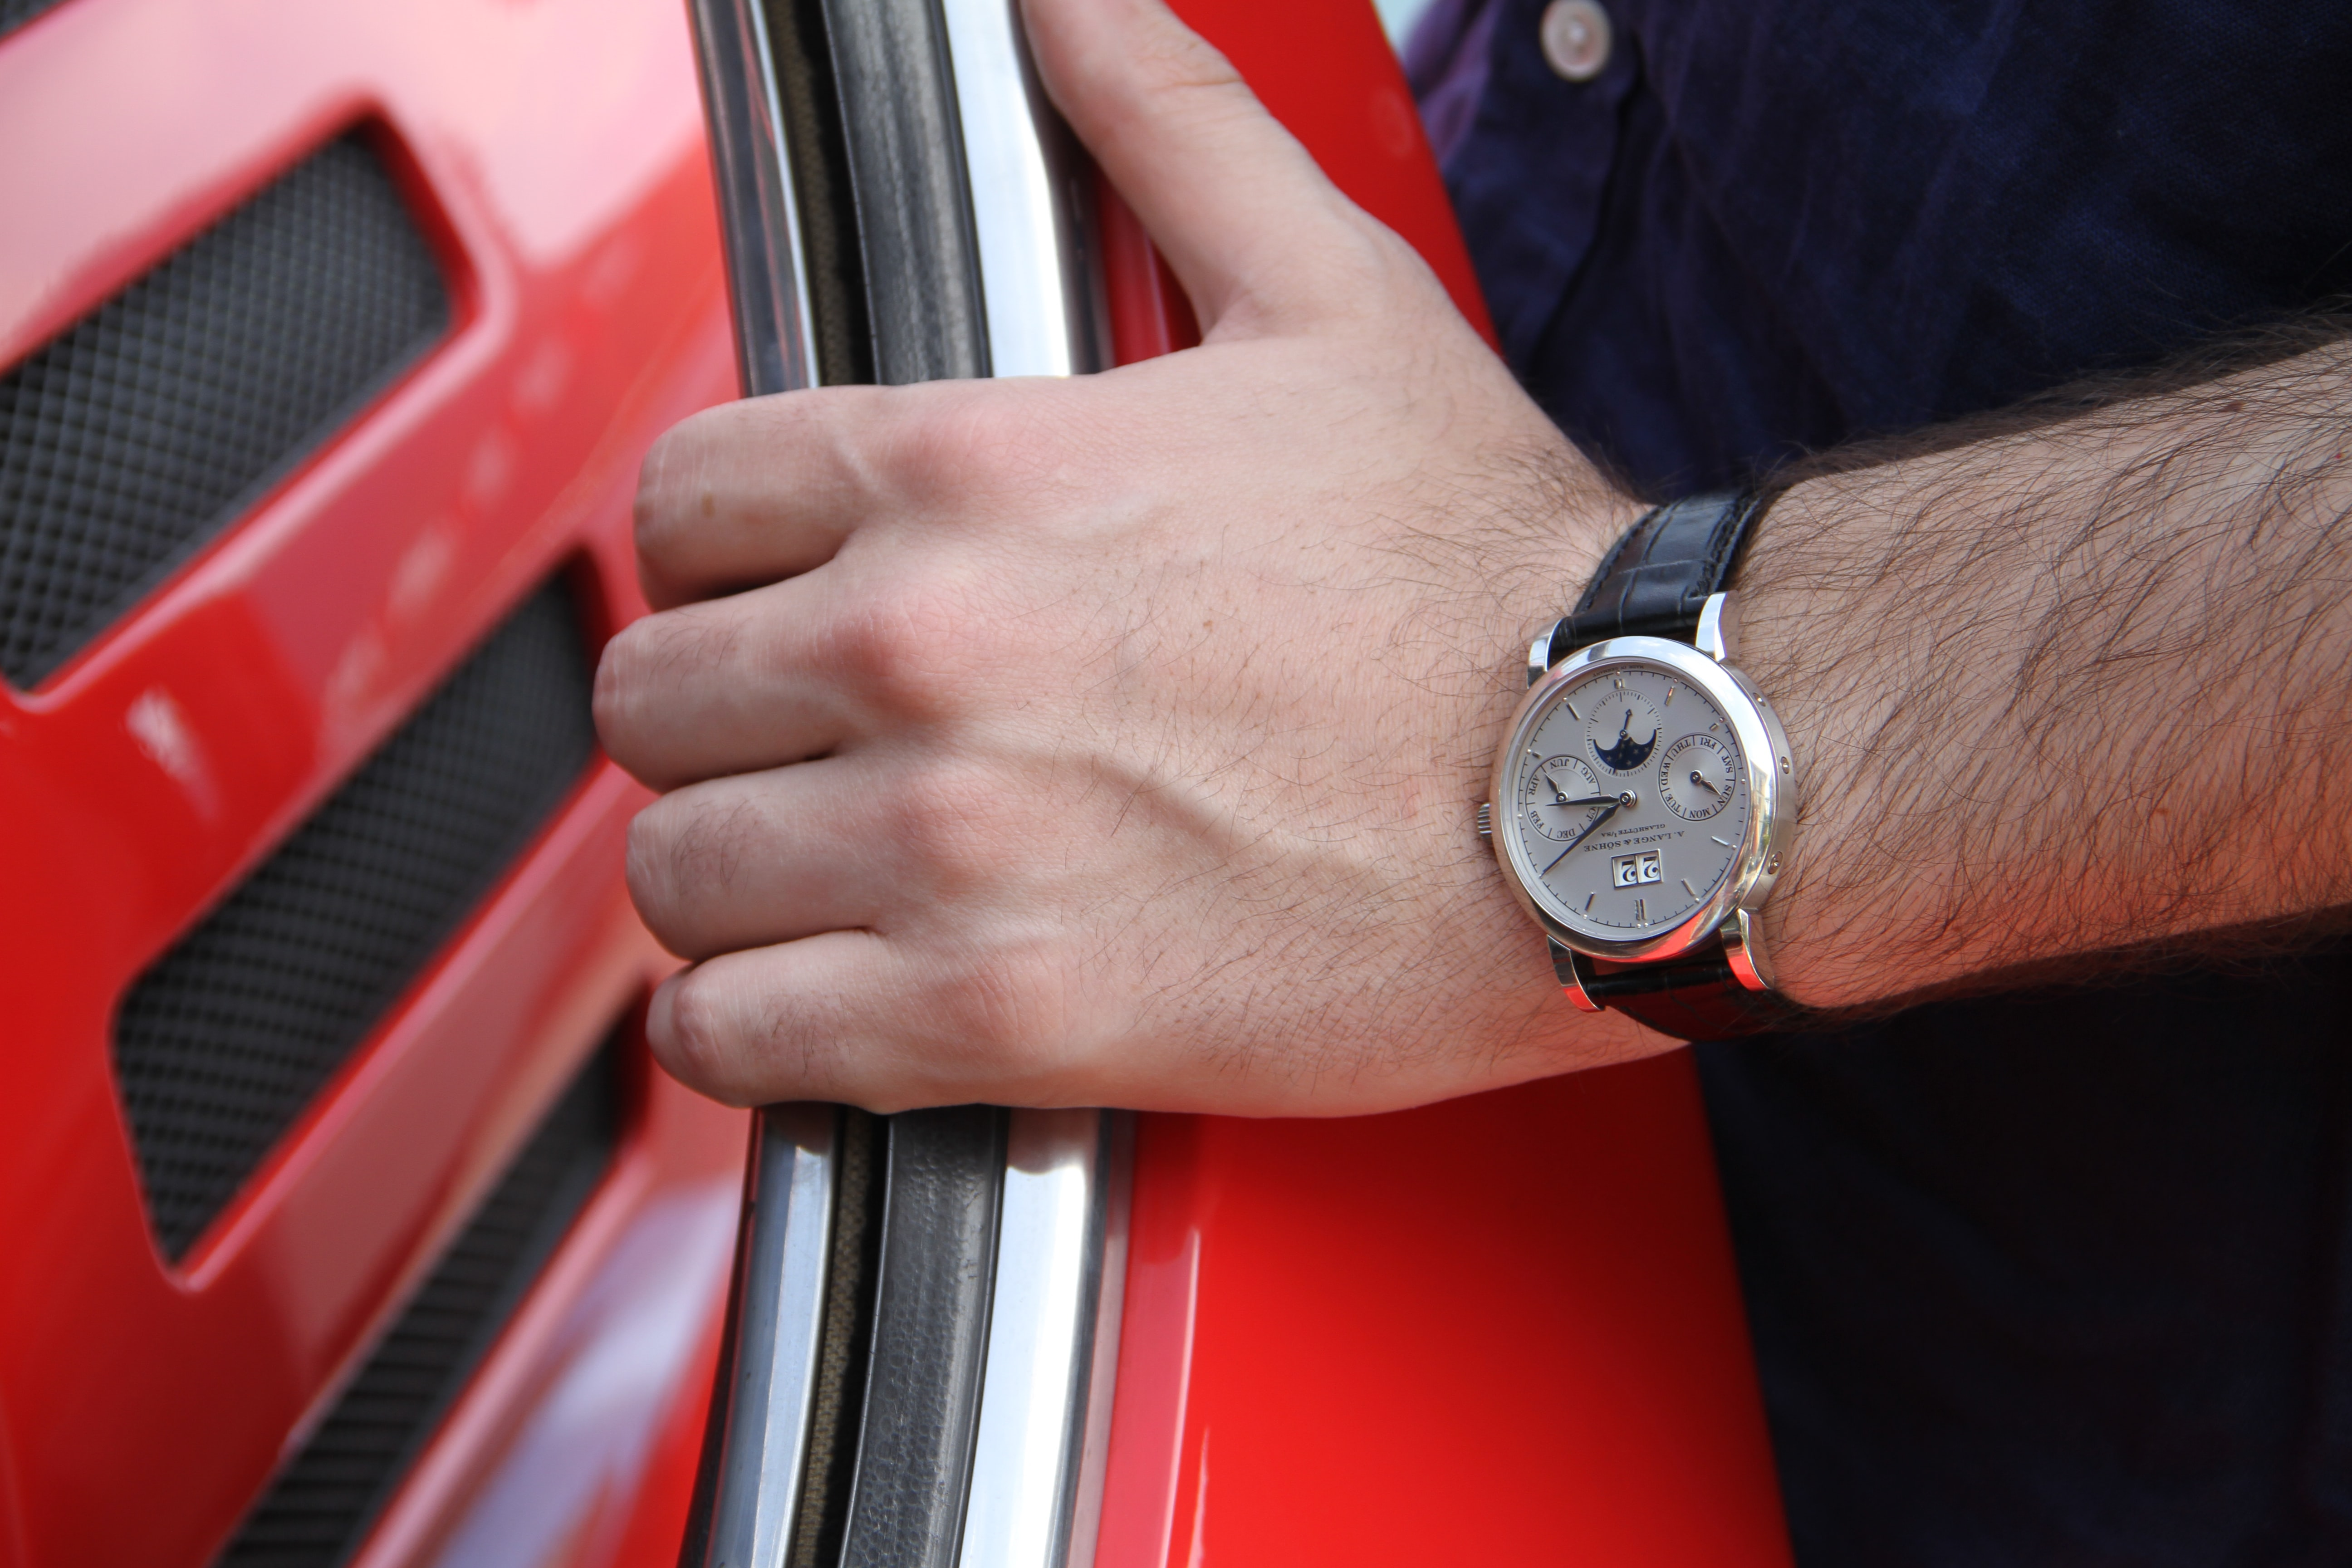 On my wrist, the A. Lange & Söhne Saxonia Annual Calendar in platinum. Photo Report: Watch And Car Spotting At The 2016 Concorso d'Eleganza Villa d'Este With A. Lange & Söhne Photo Report: Watch And Car Spotting At The 2016 Concorso d'Eleganza Villa d'Este With A. Lange & Söhne IMG 5971